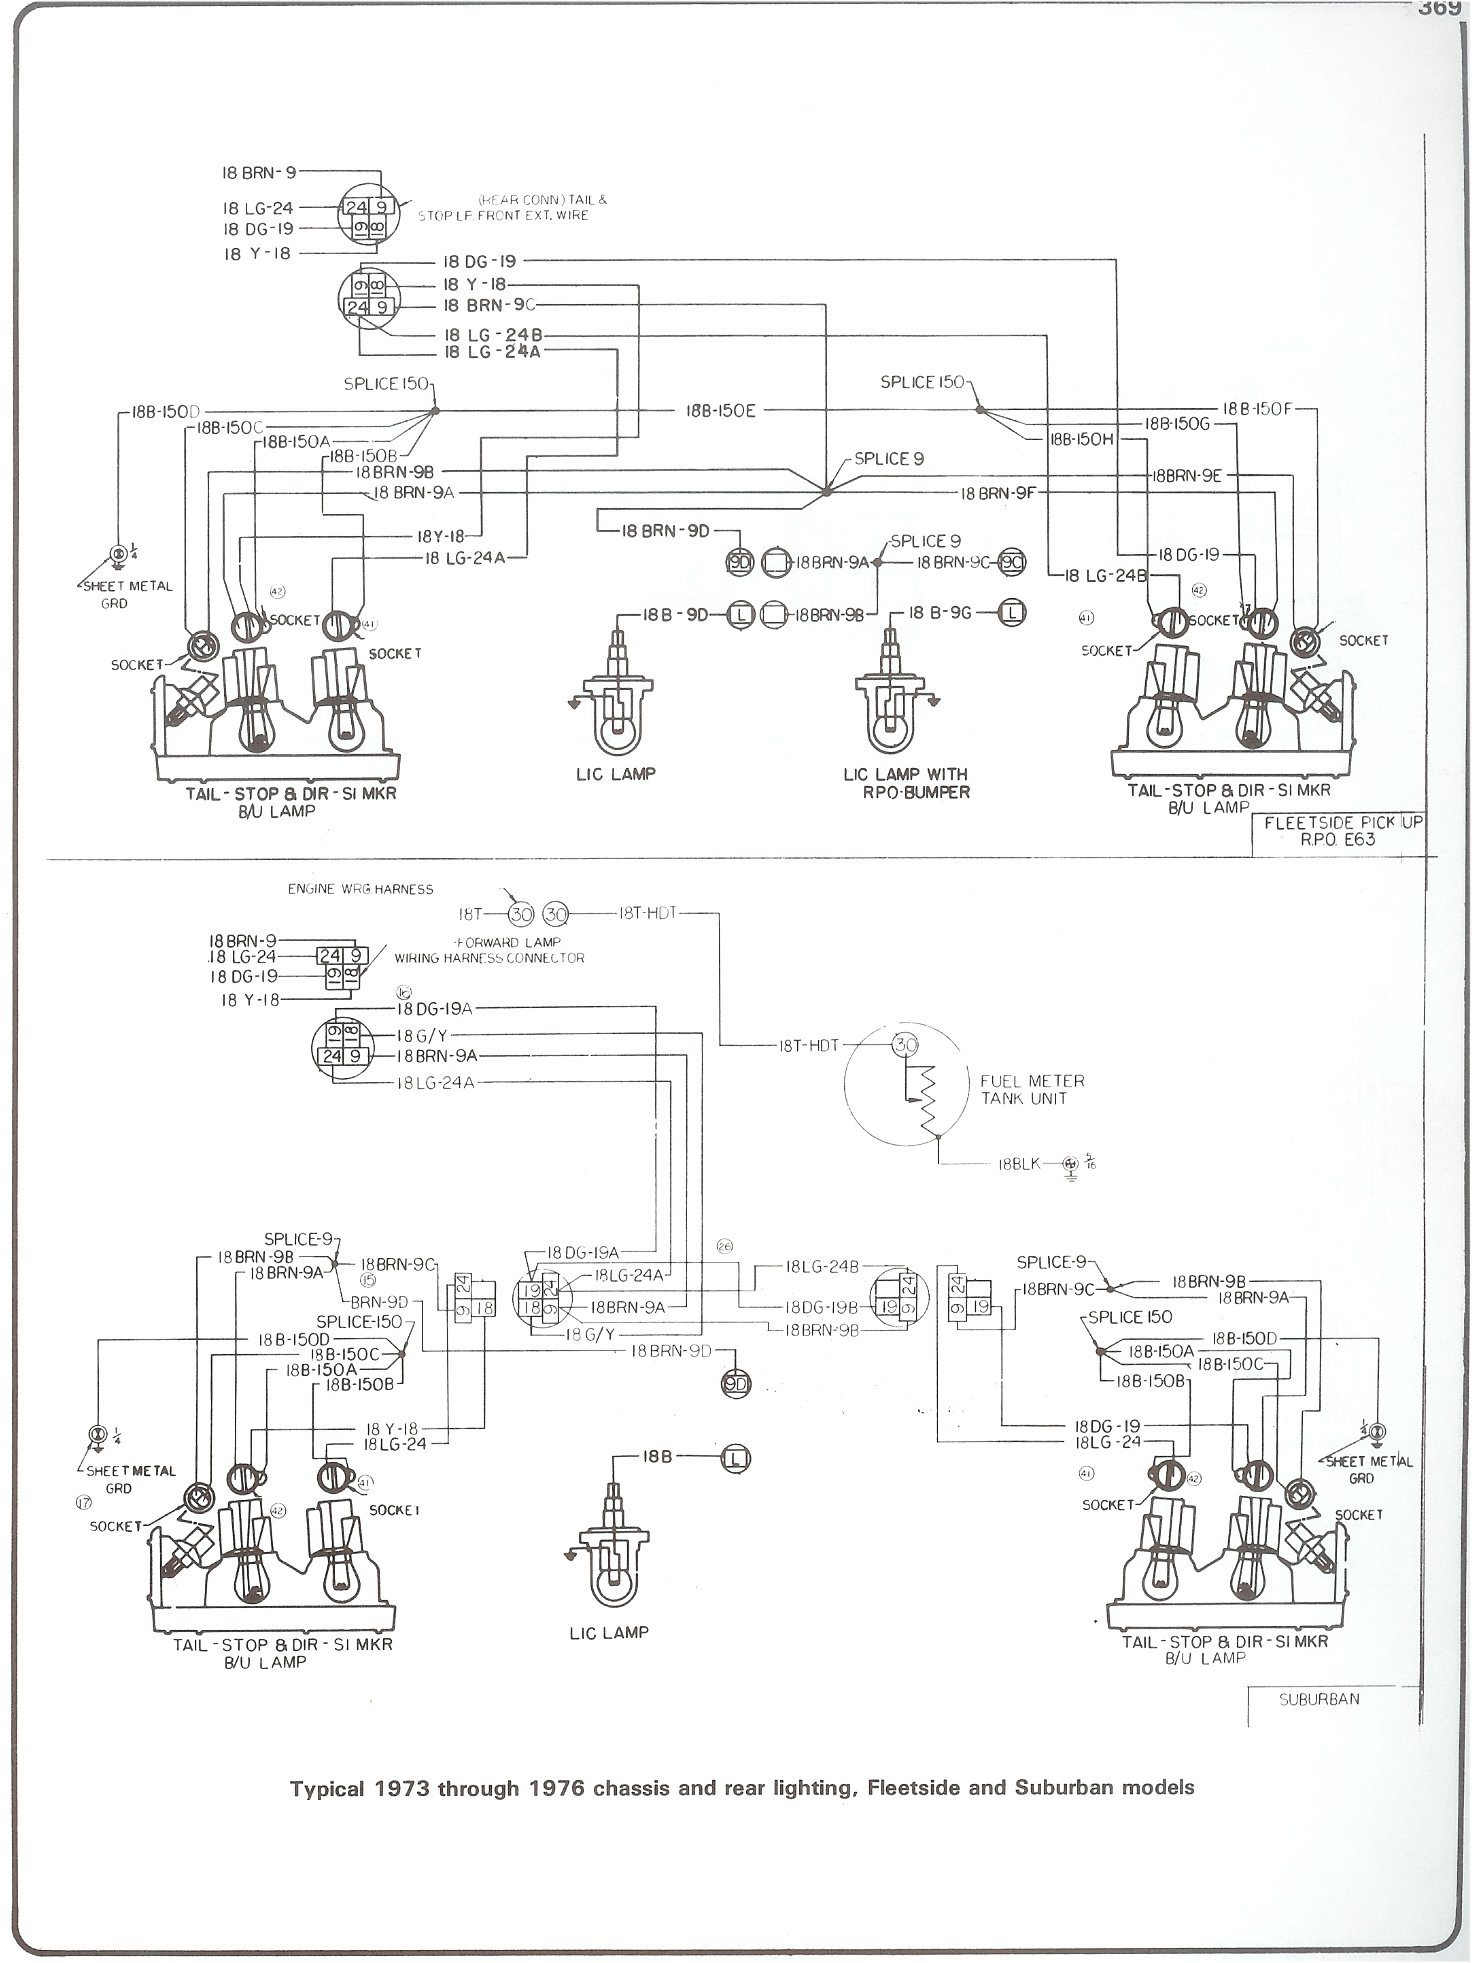 1982 Chevy Truck Wiring Diagram from www.73-87chevytrucks.com